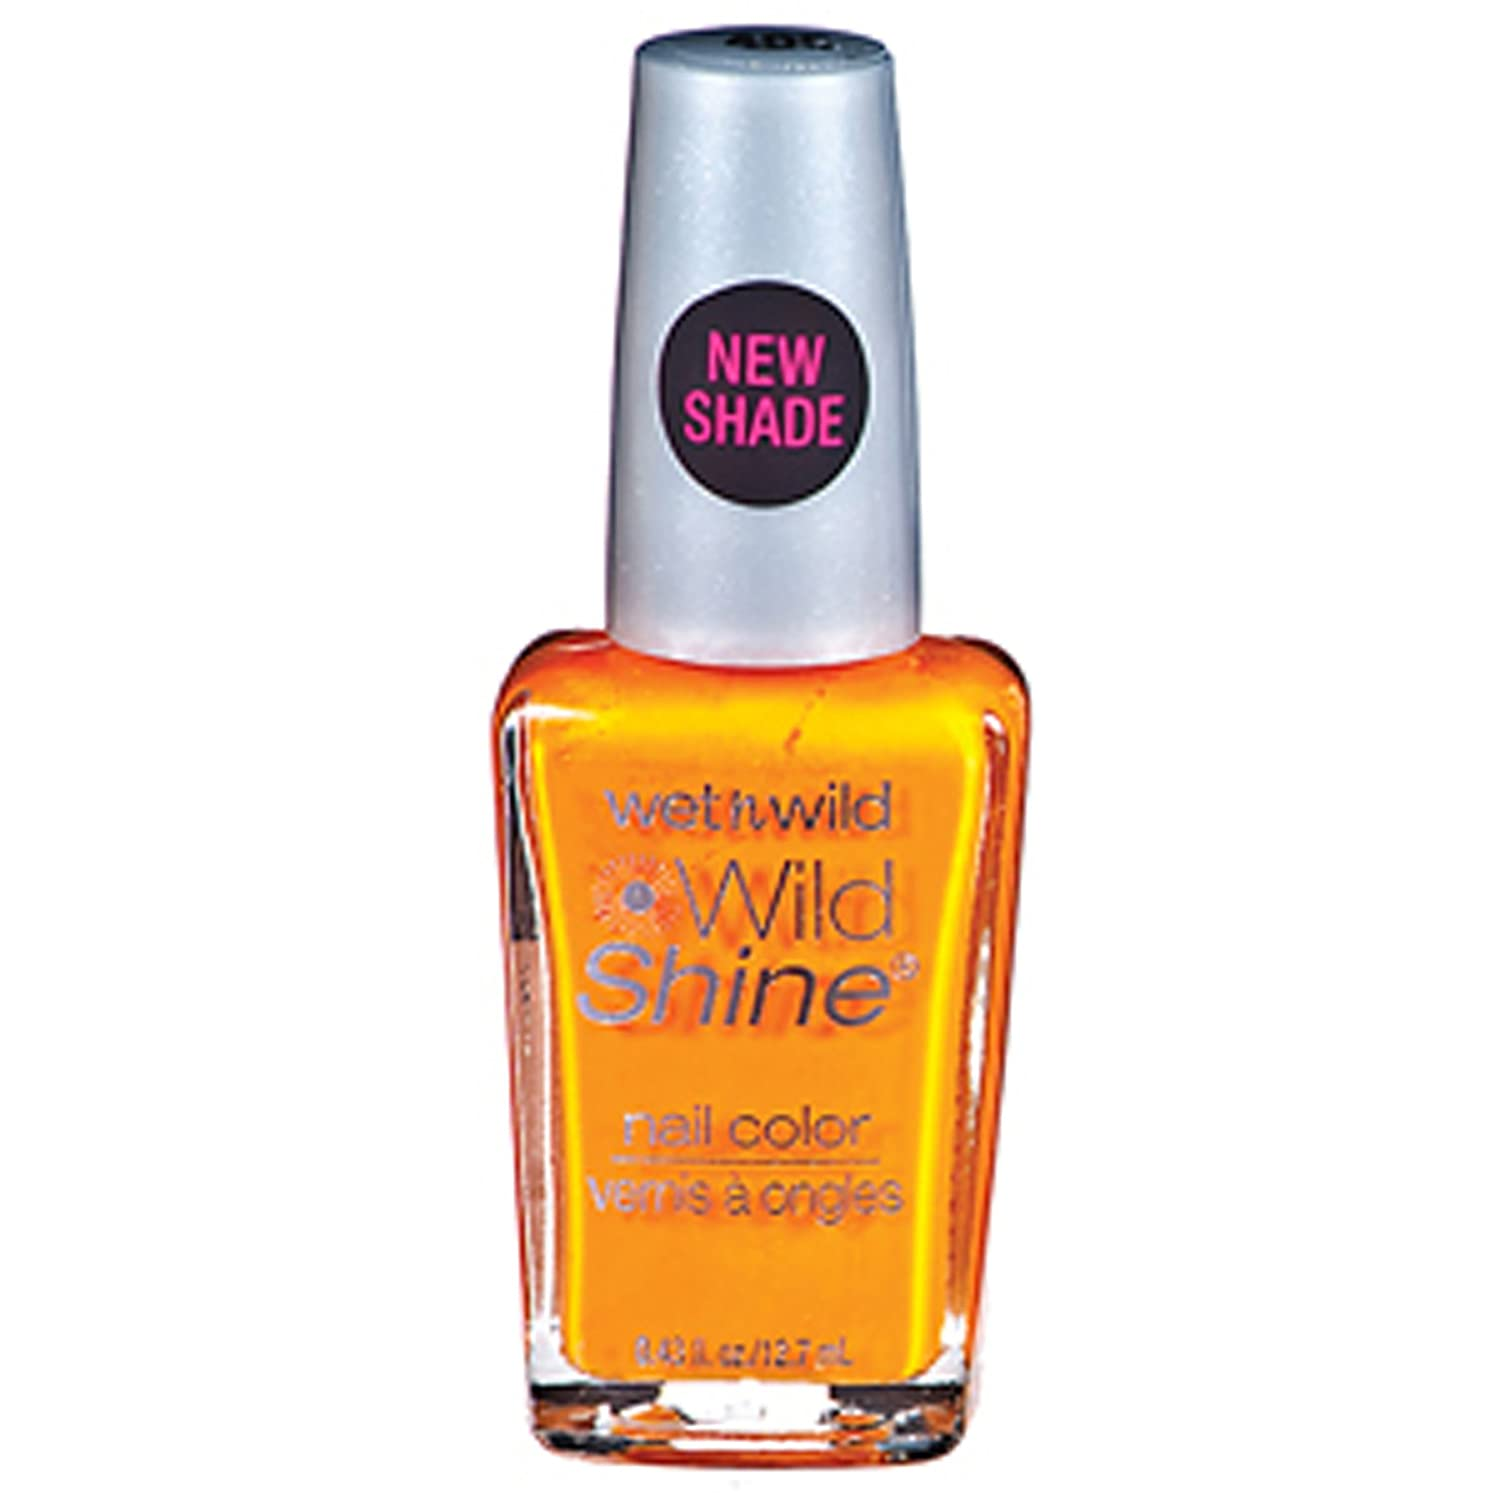 Wet N Wild Wild Shine Nail Color: Sunny Side Up #405